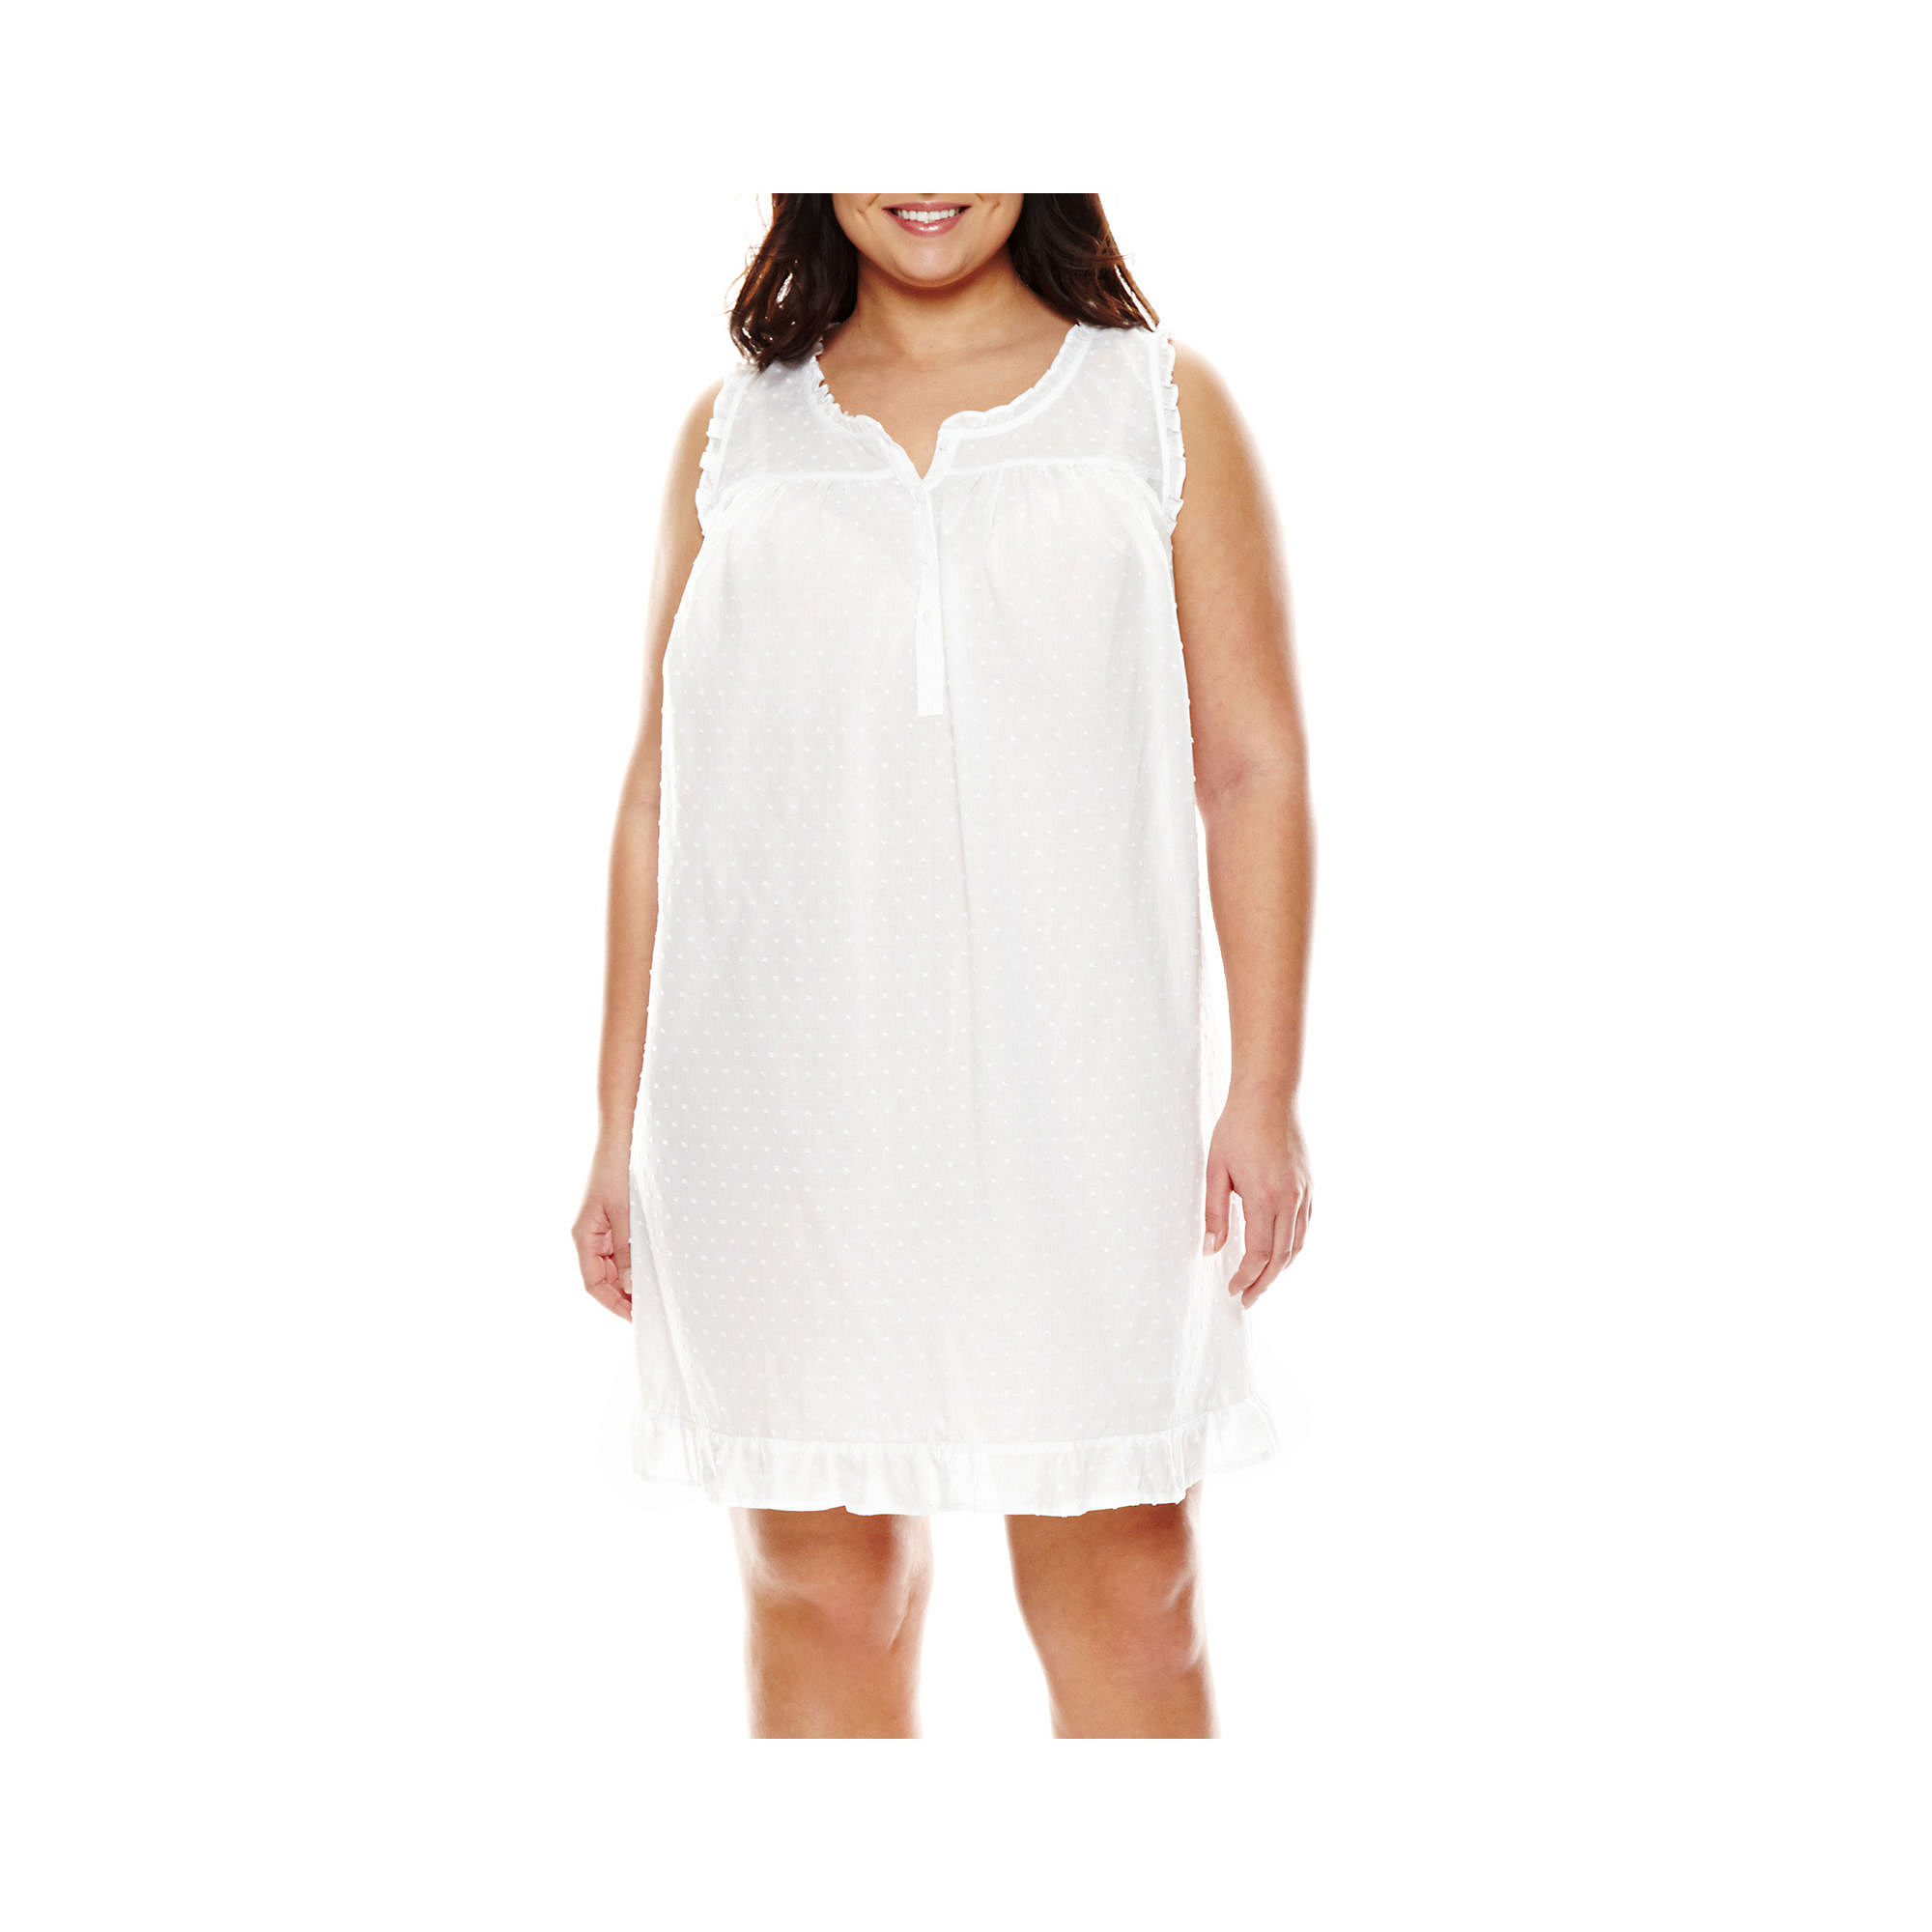 Adonna Sleeveless Short Nightgown - Plus plus size,  plus size fashion plus size appare